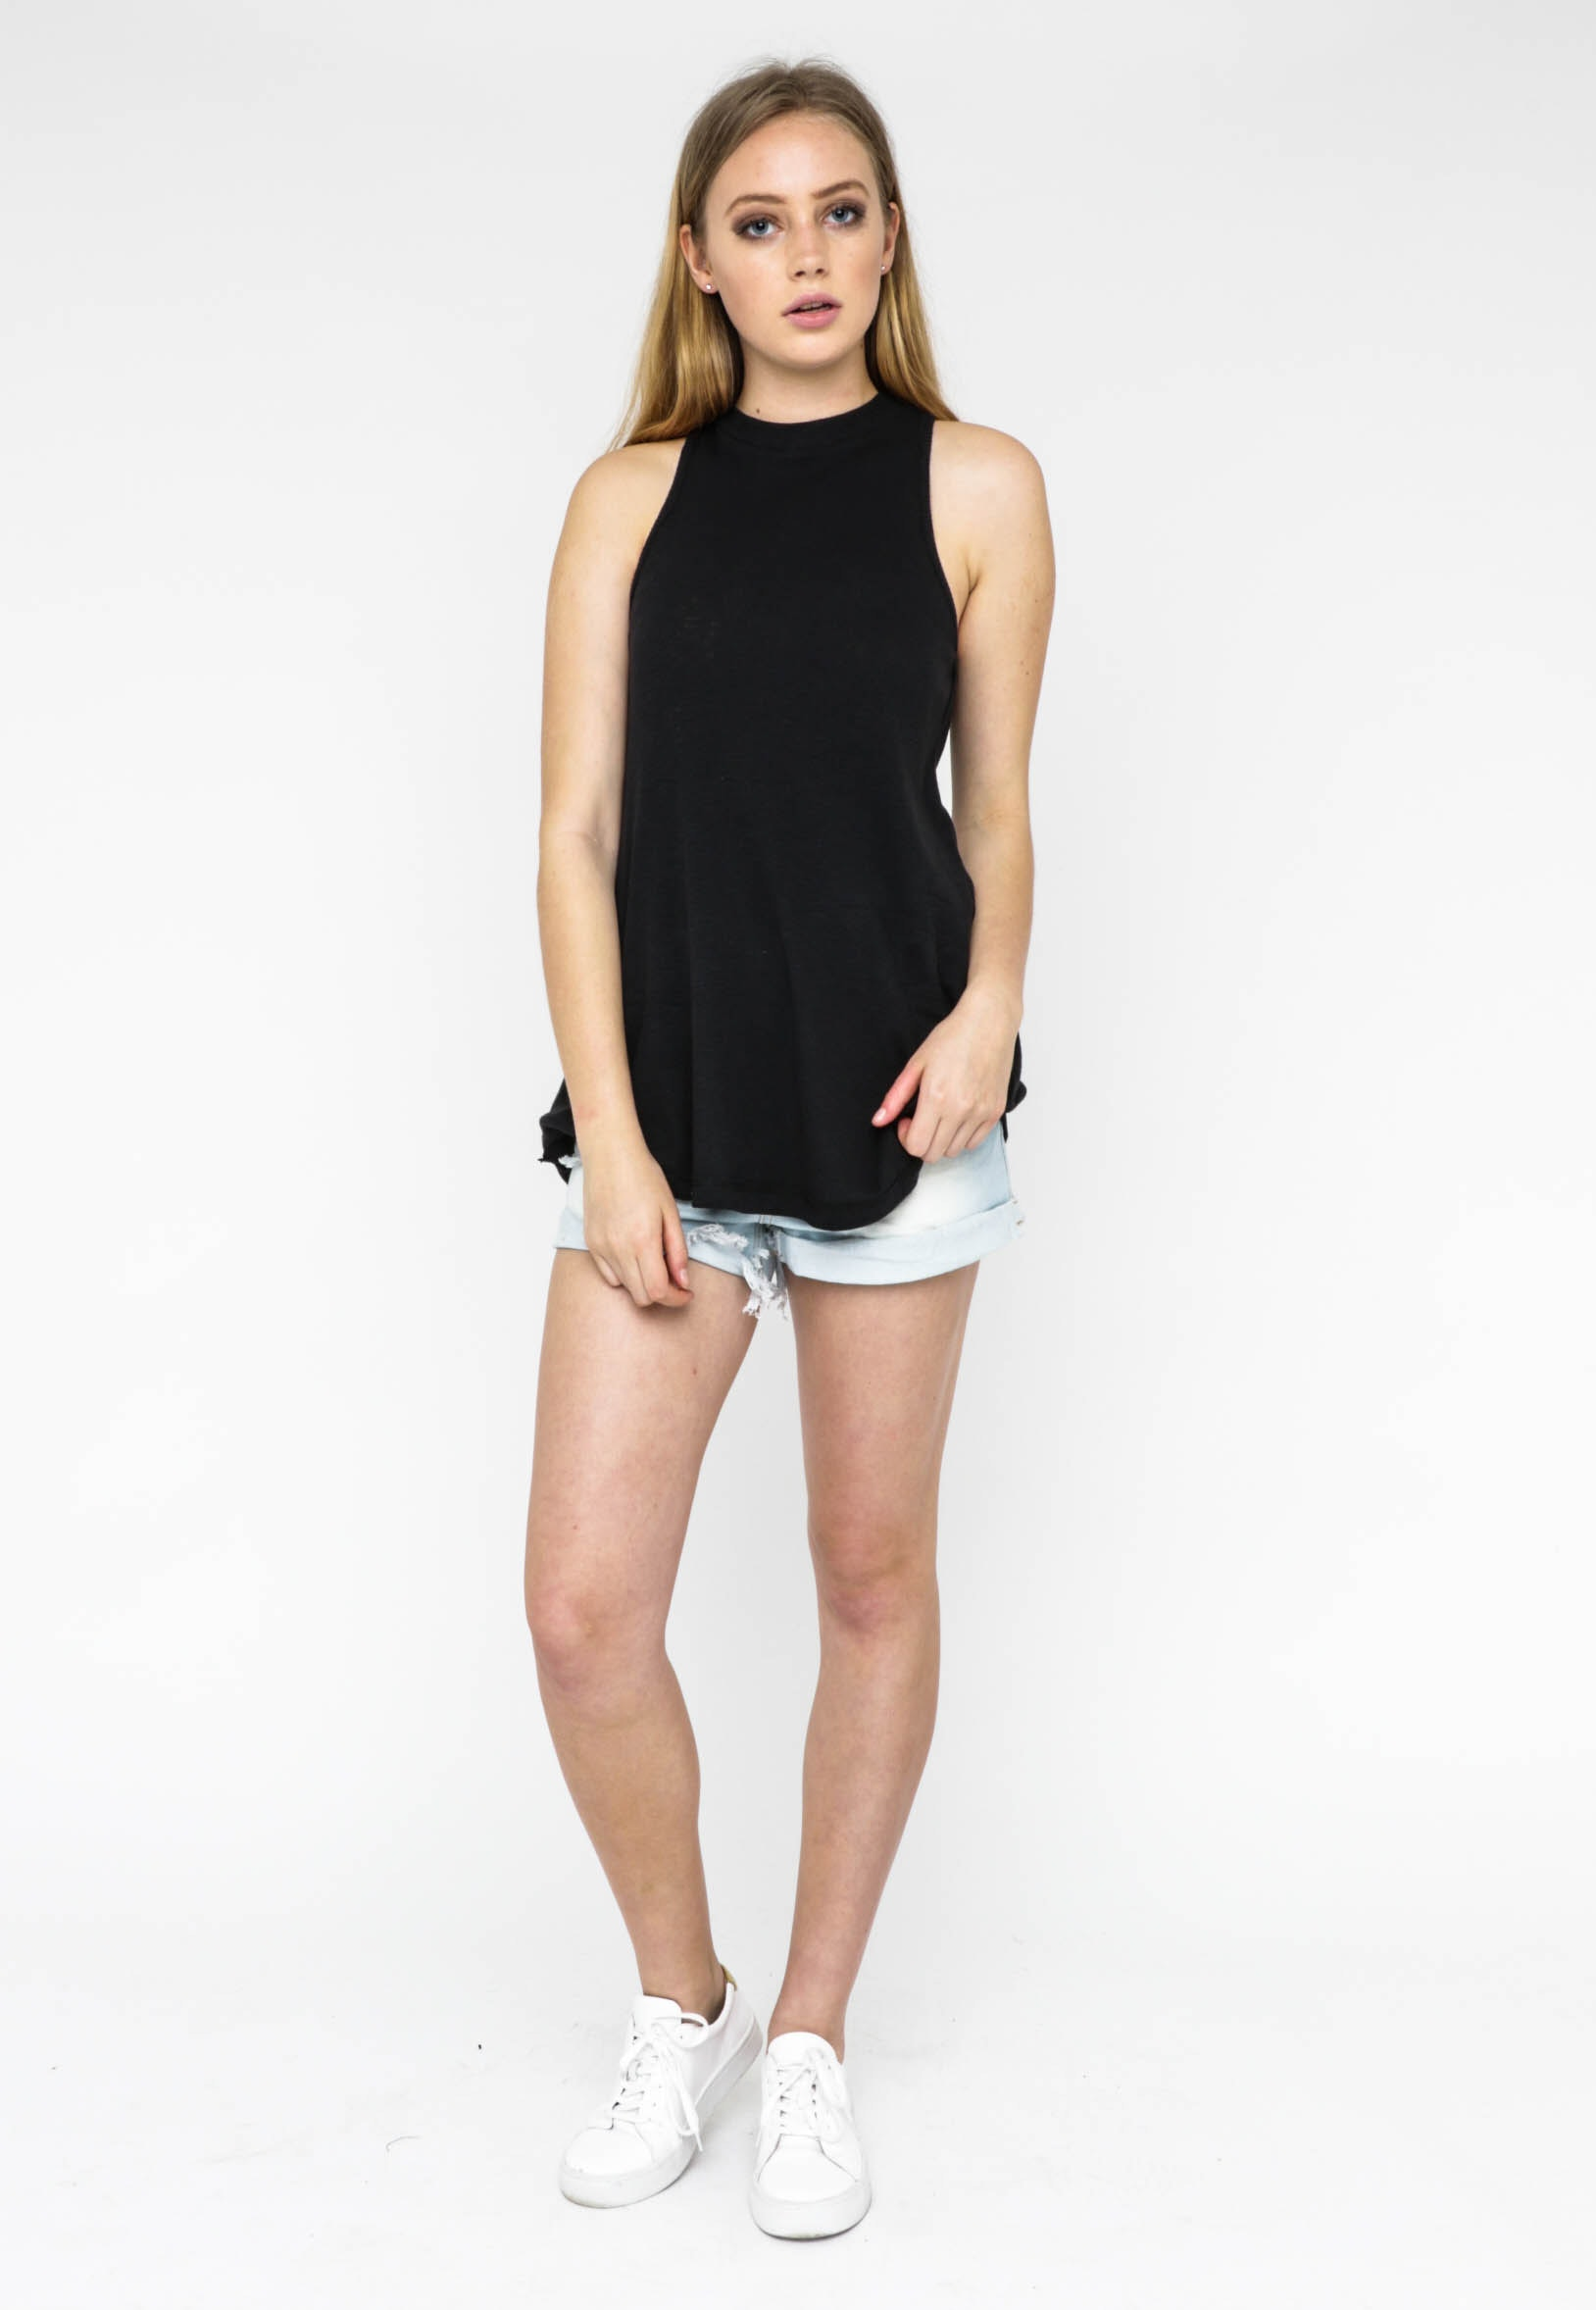 All About Eve - Jean Top - Black